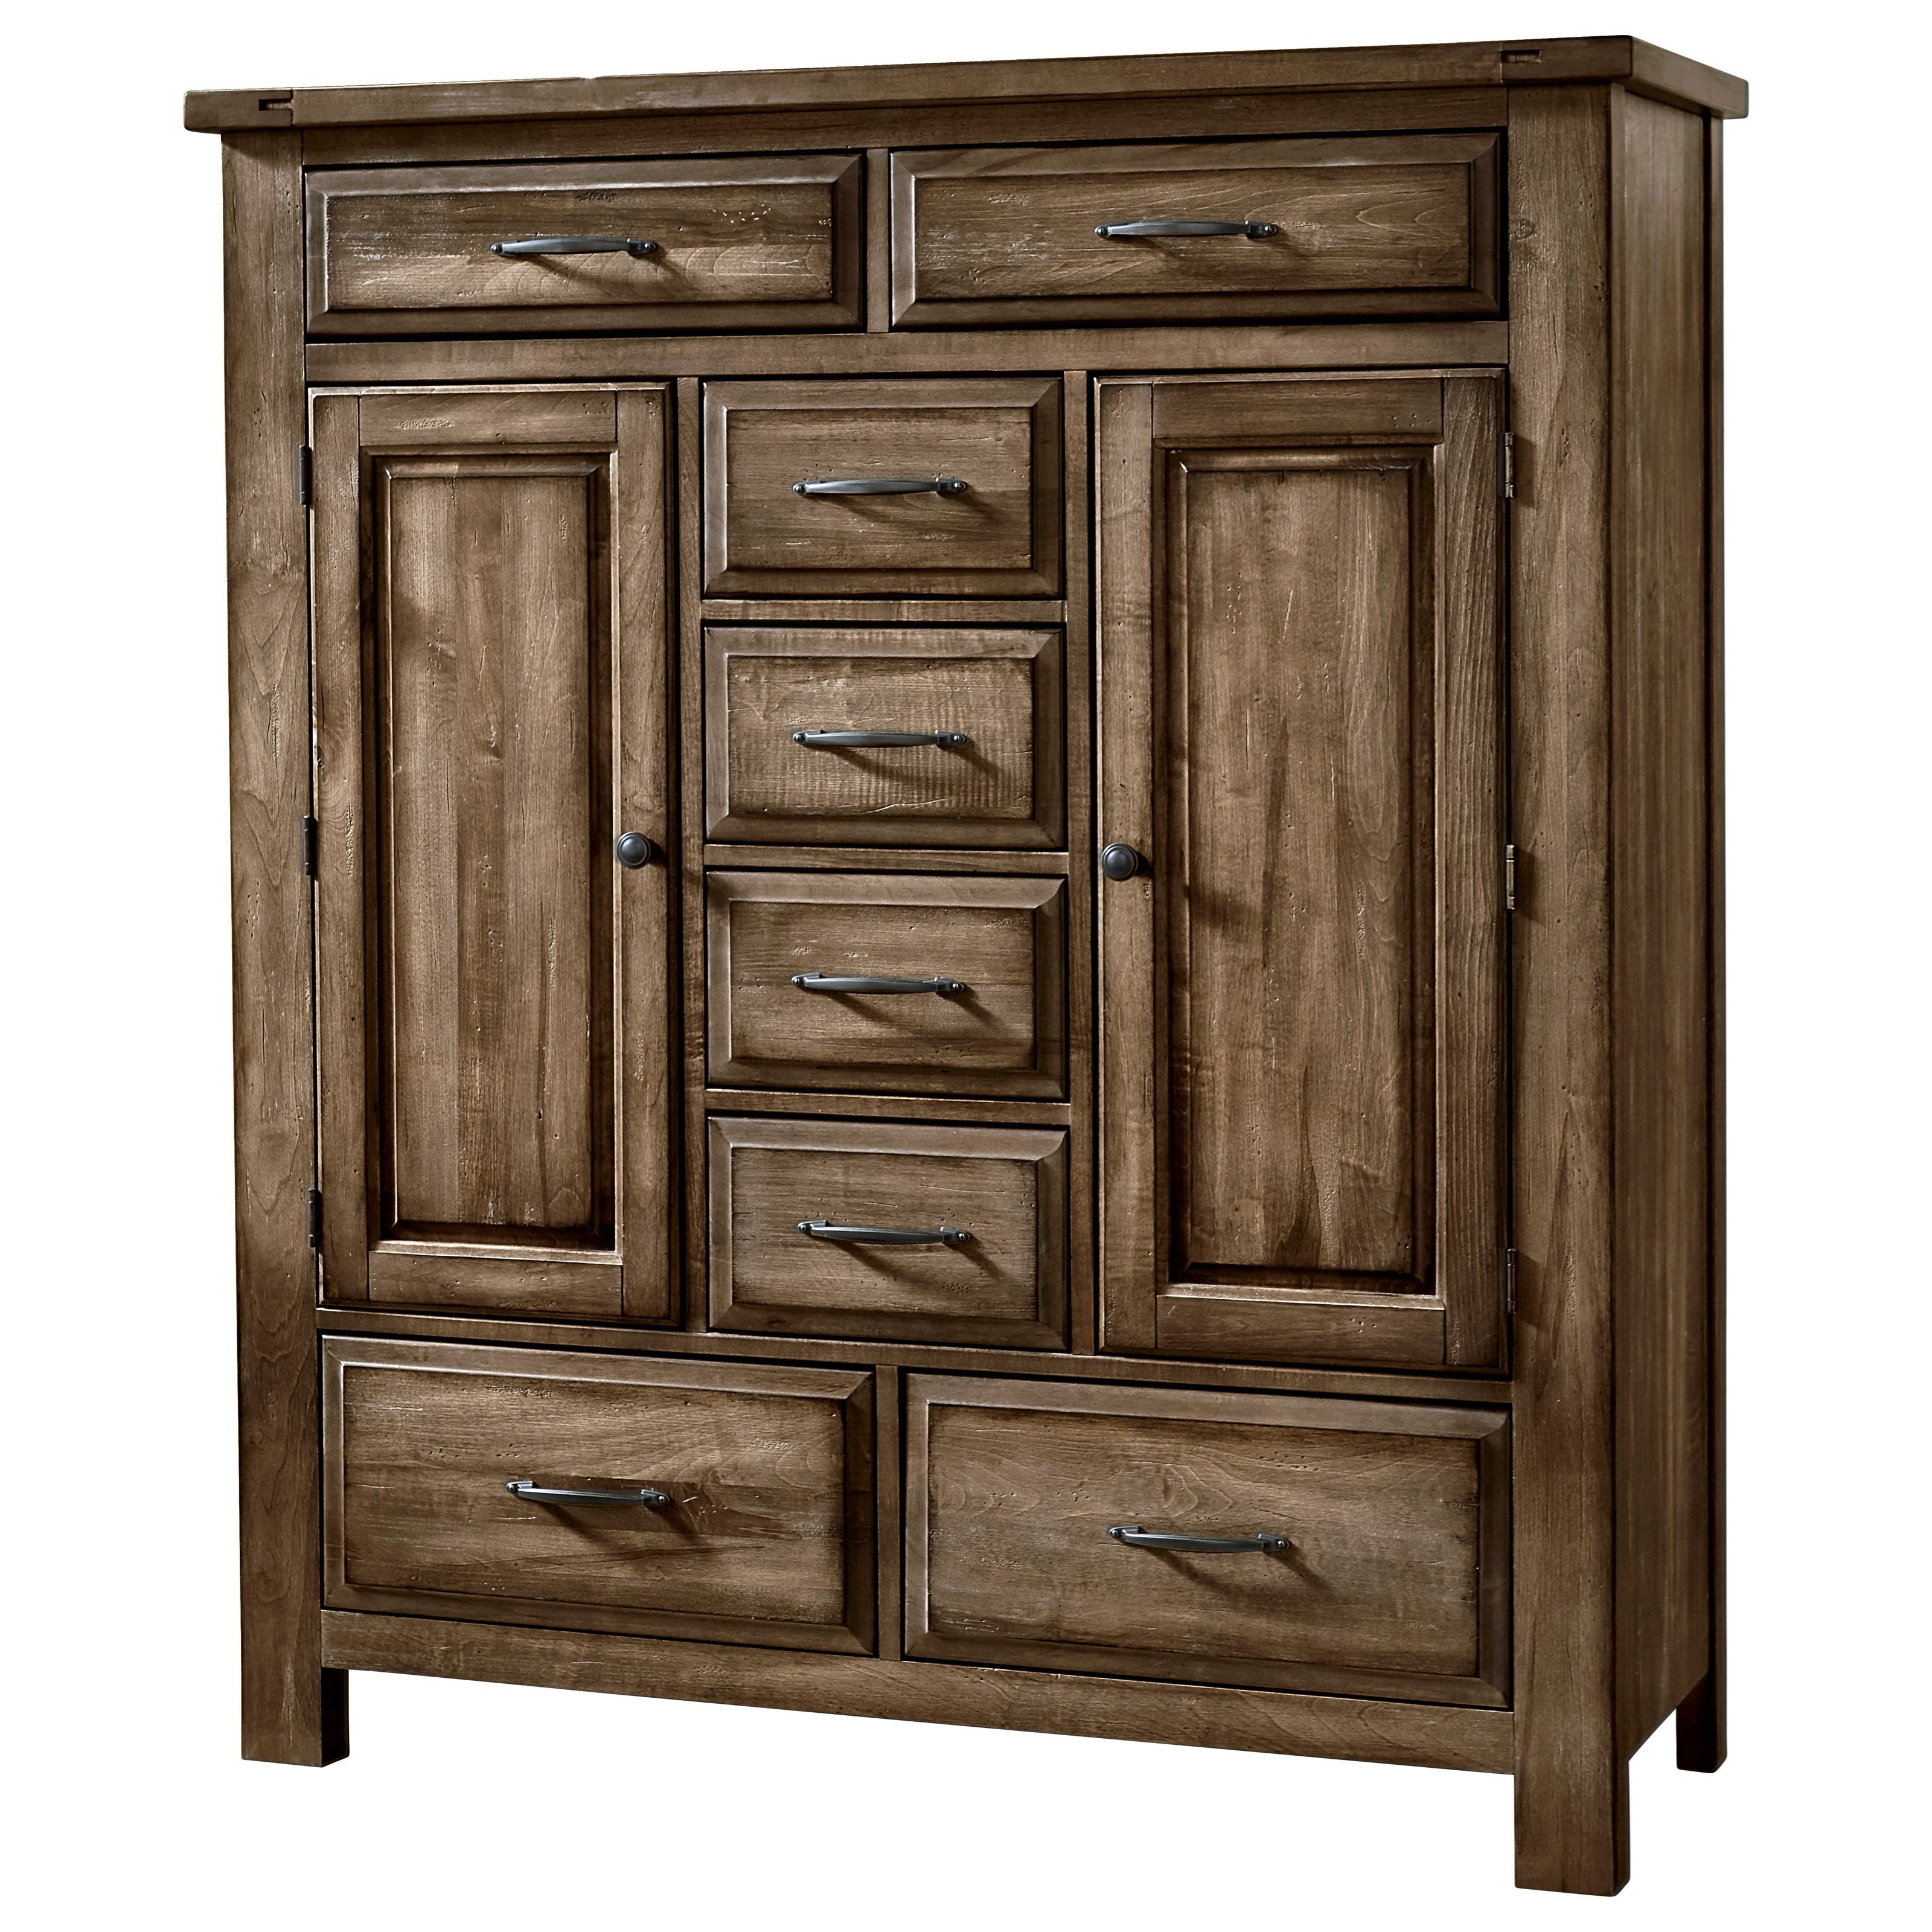 Maple Road Sweater Chest - 8 Drawers 2 Doors by Artisan & Post at Rooms and Rest